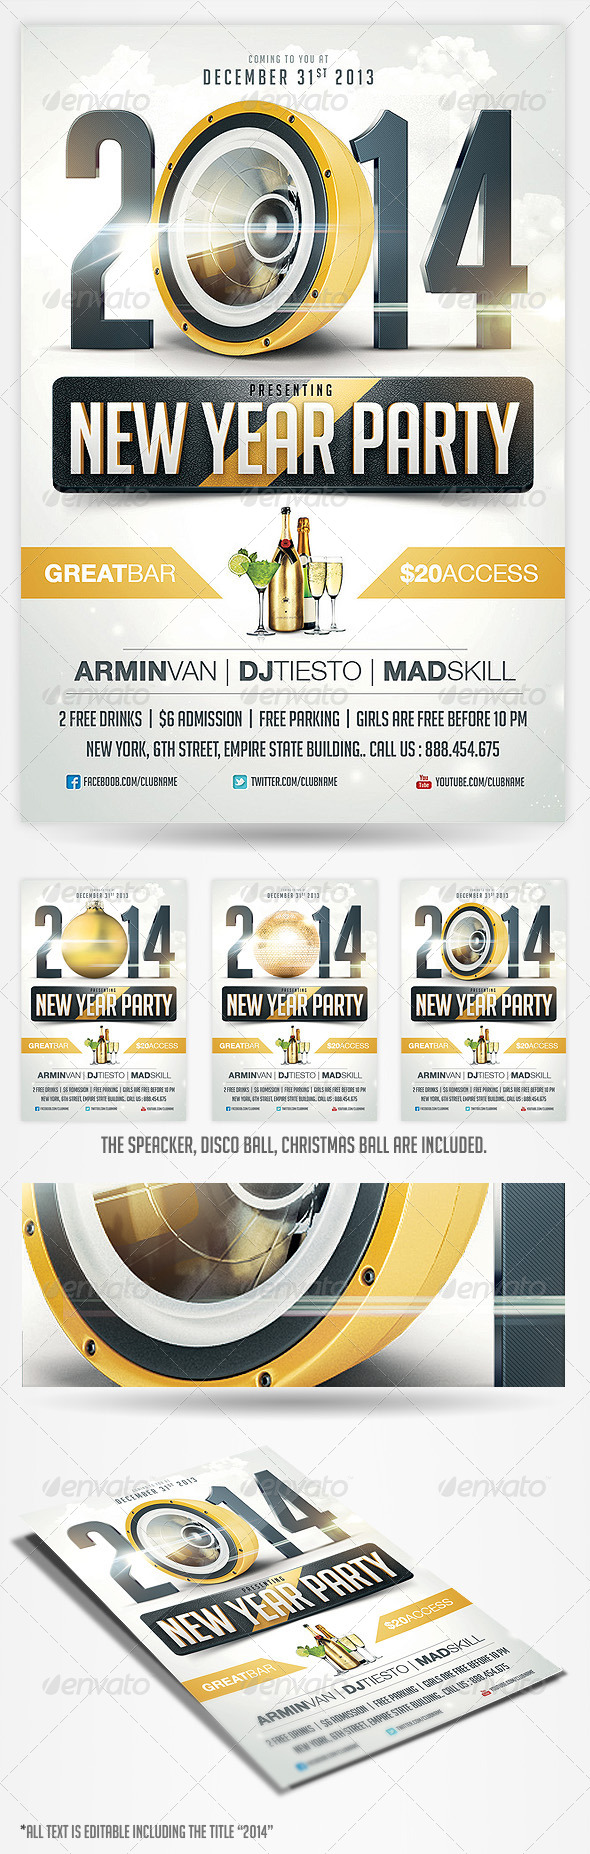 2014 New Years Eve Party Flyer - Holidays Events